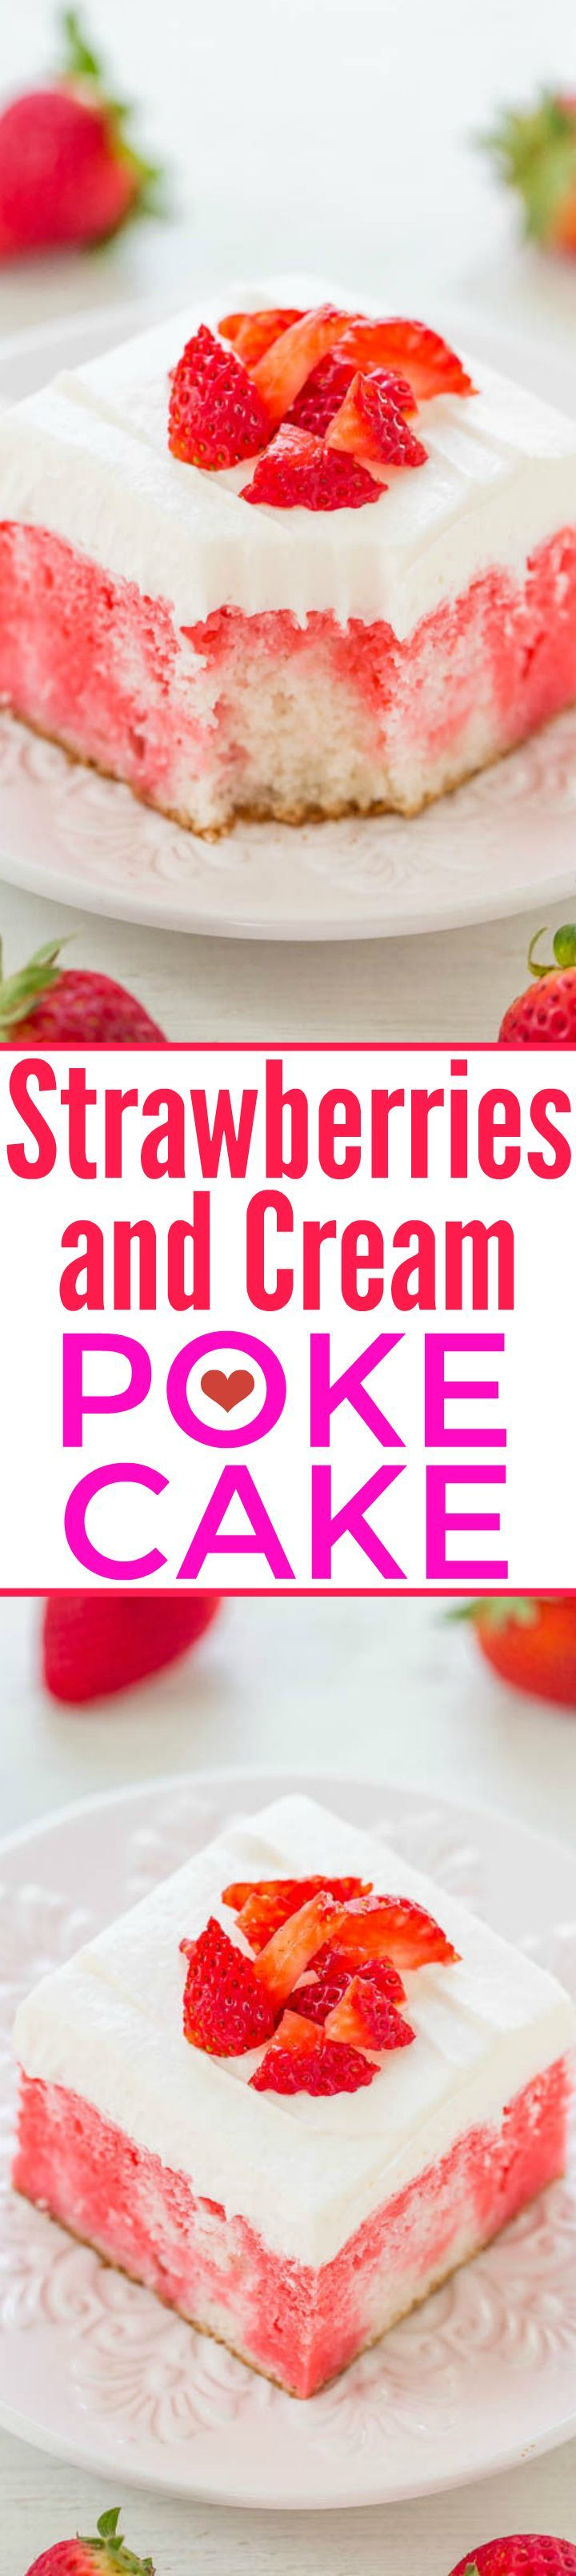 Strawberries and Cream Poke Cake - A fast, EASY, foolproof cake that looks tie-dyed from the strawberry streaks!! Super moist yet light and perfect for spring and summer parties!!